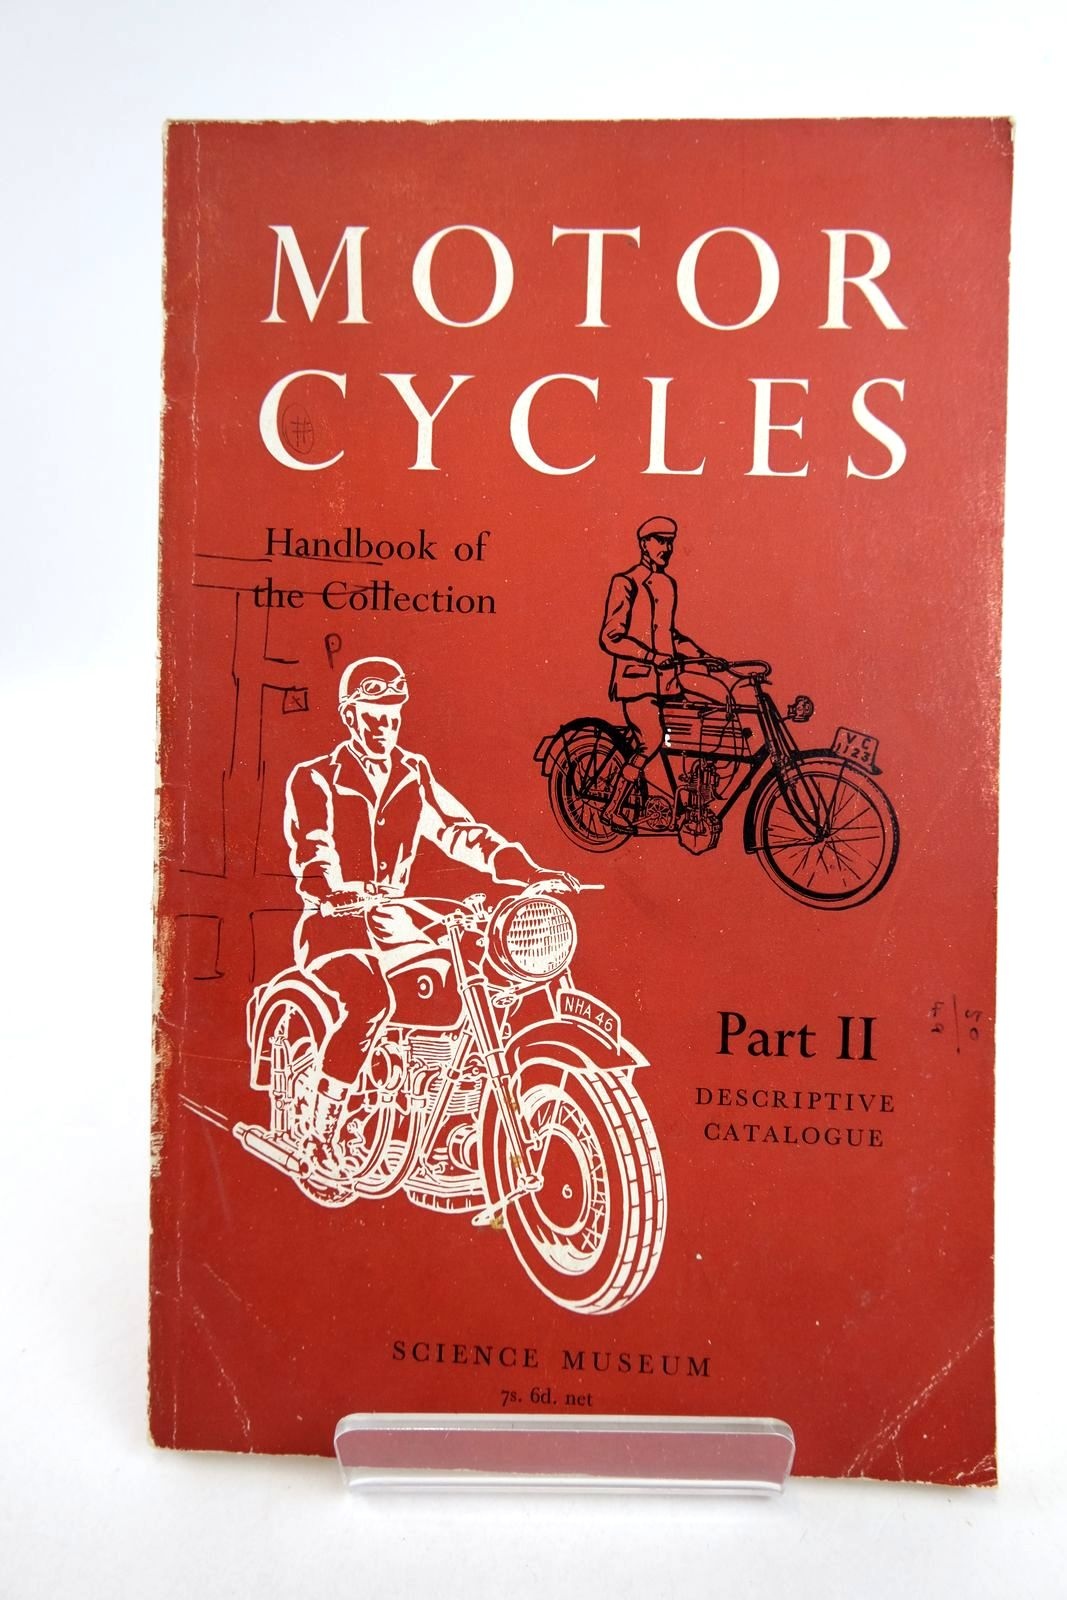 Photo of HANDBOOK OF THE COLLECTION ILLUSTRATING MOTORCYCLES PART II- Stock Number: 2133175